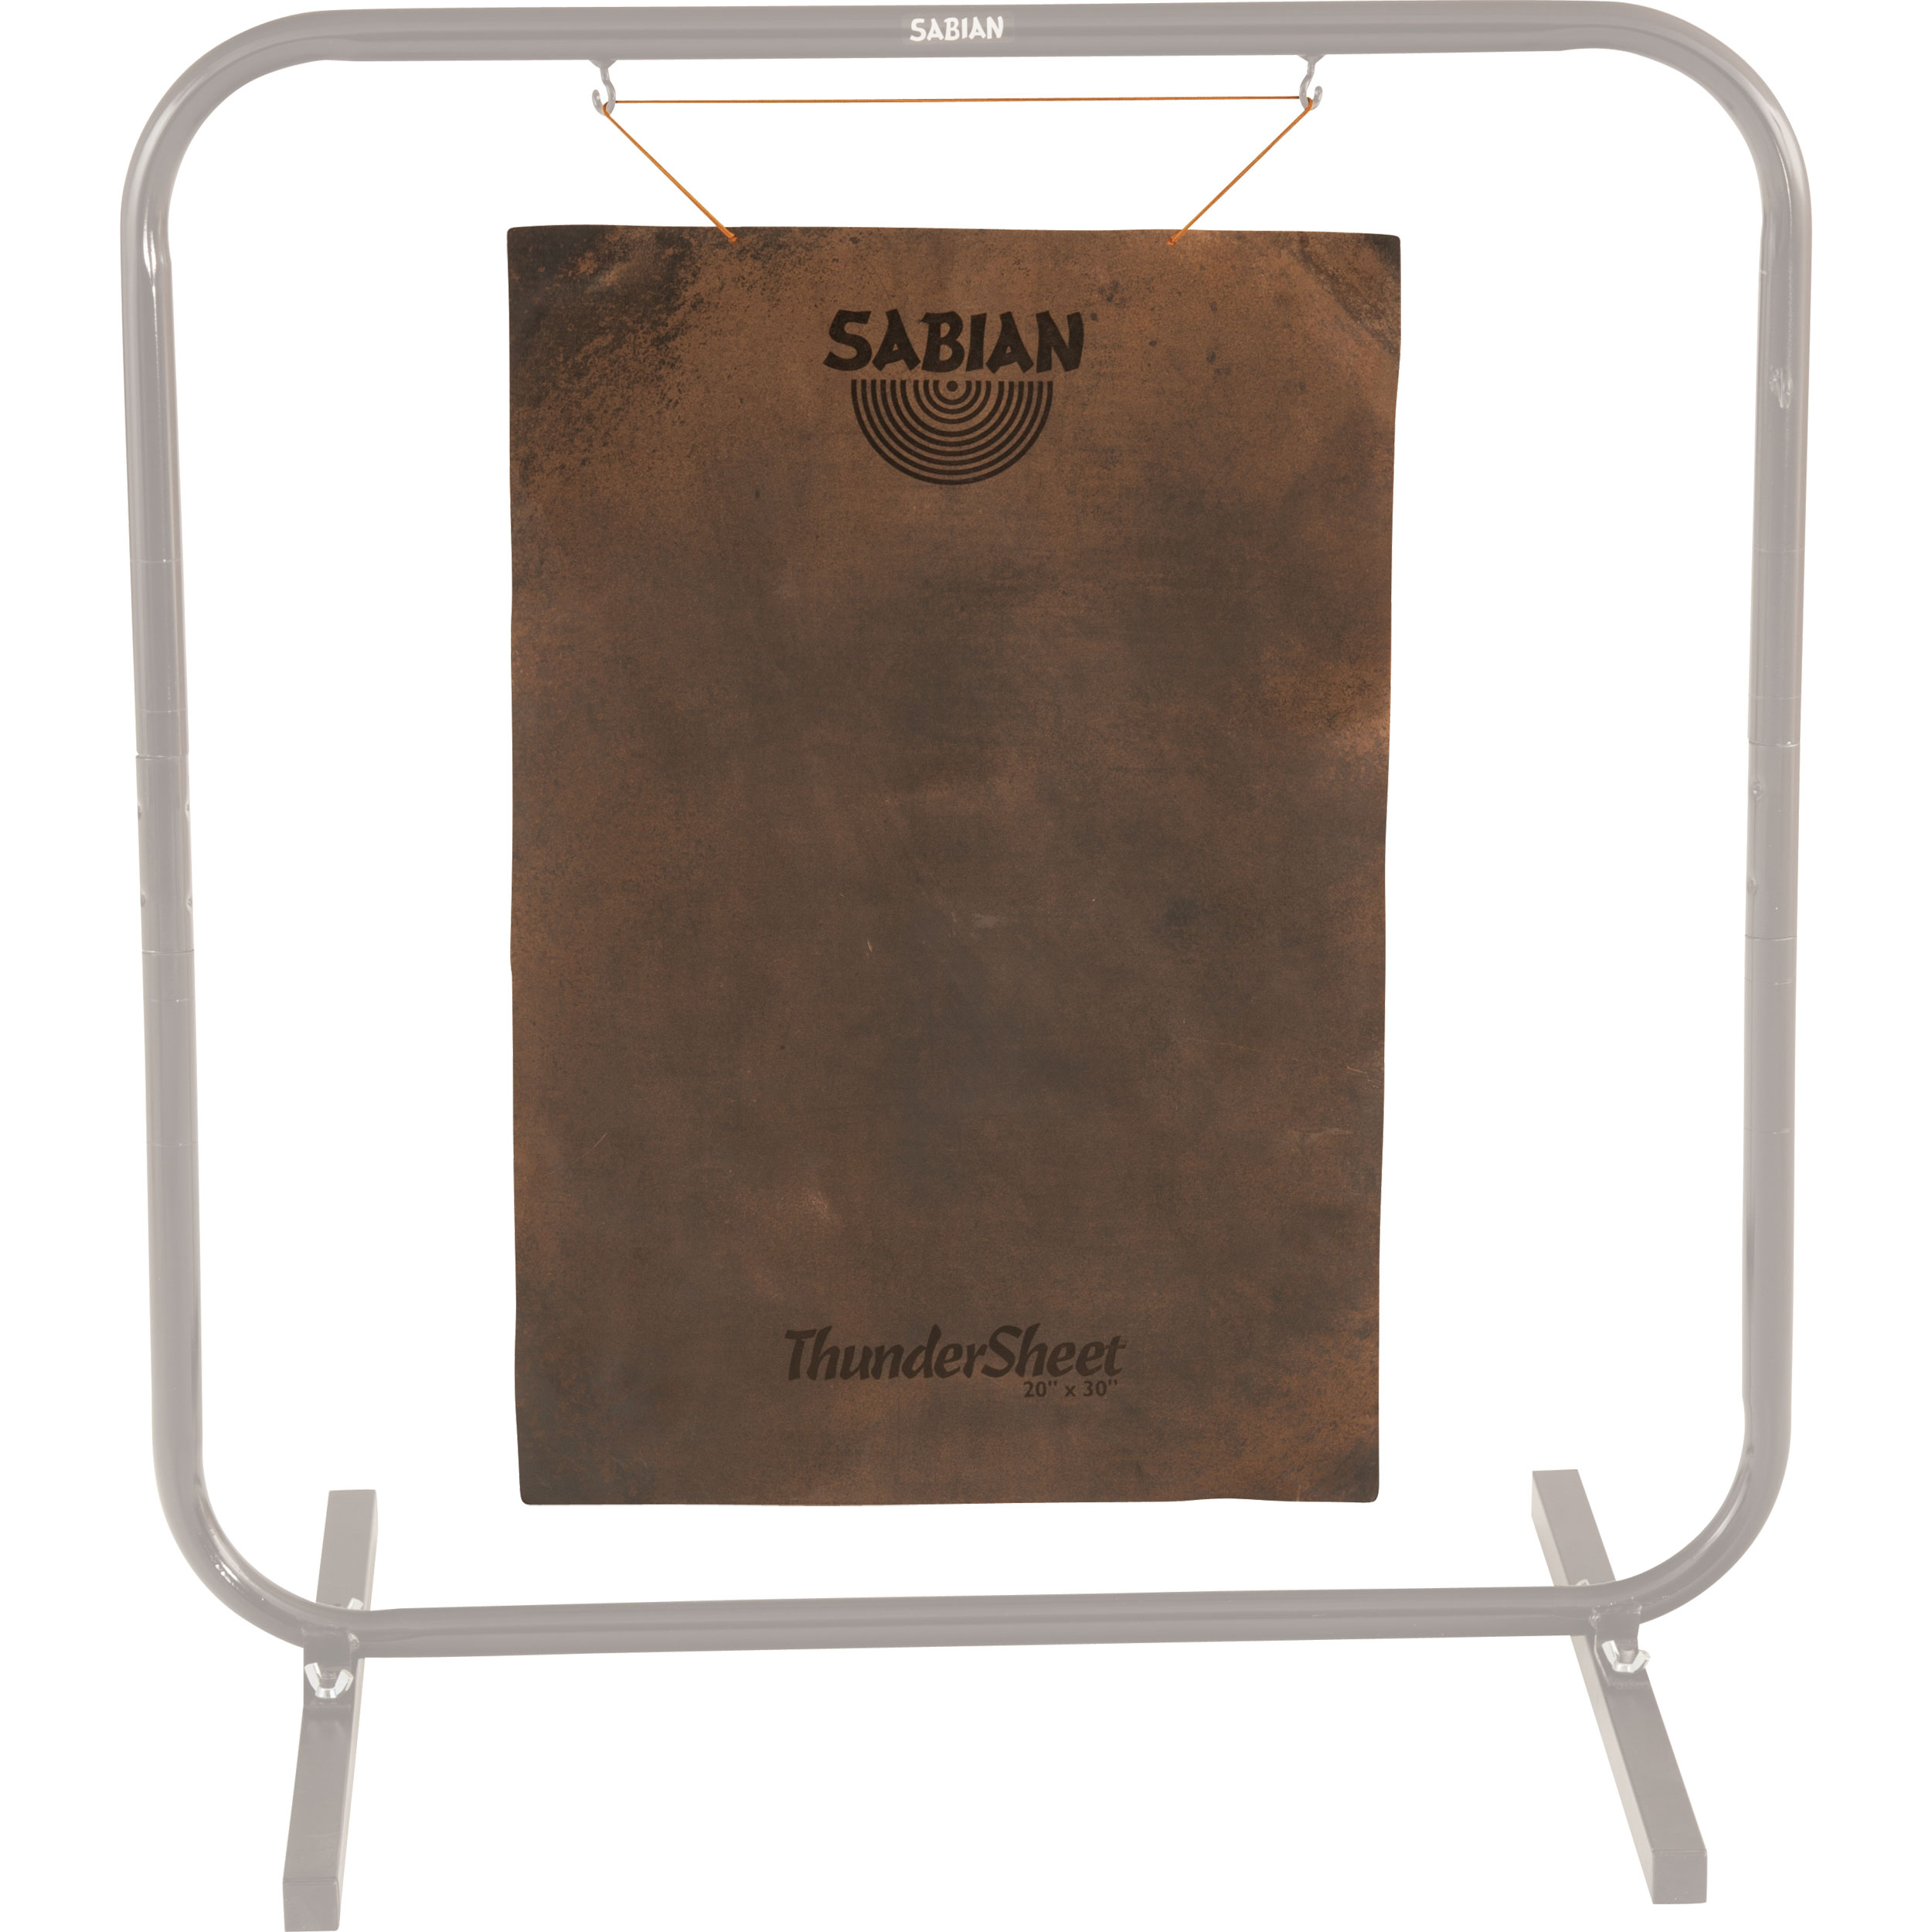 "Sabian 20 x 30"" Thunder Sheet"